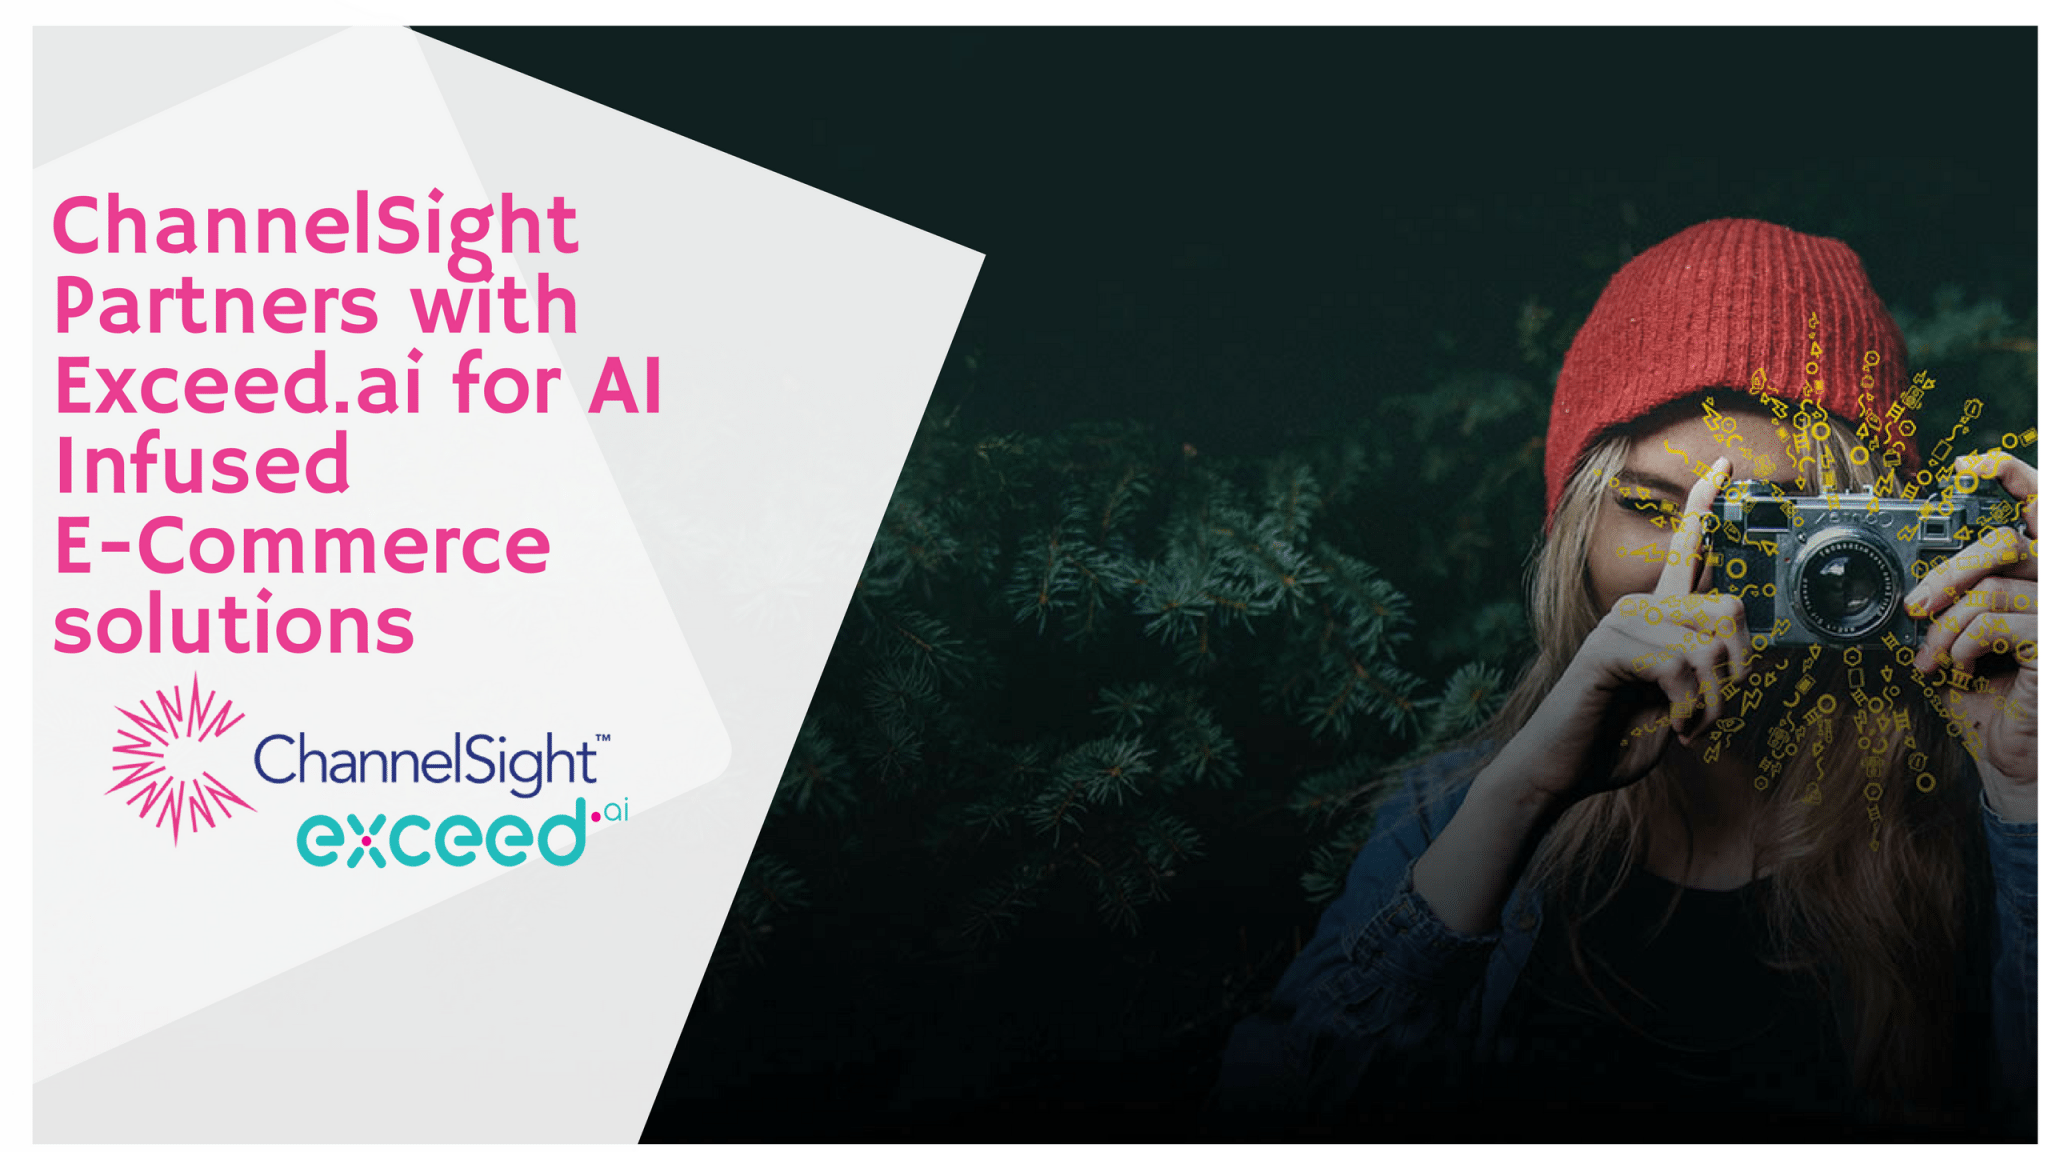 ChannelSight partners with Exceed.ai for AI Infused Digital Commerce Solutions